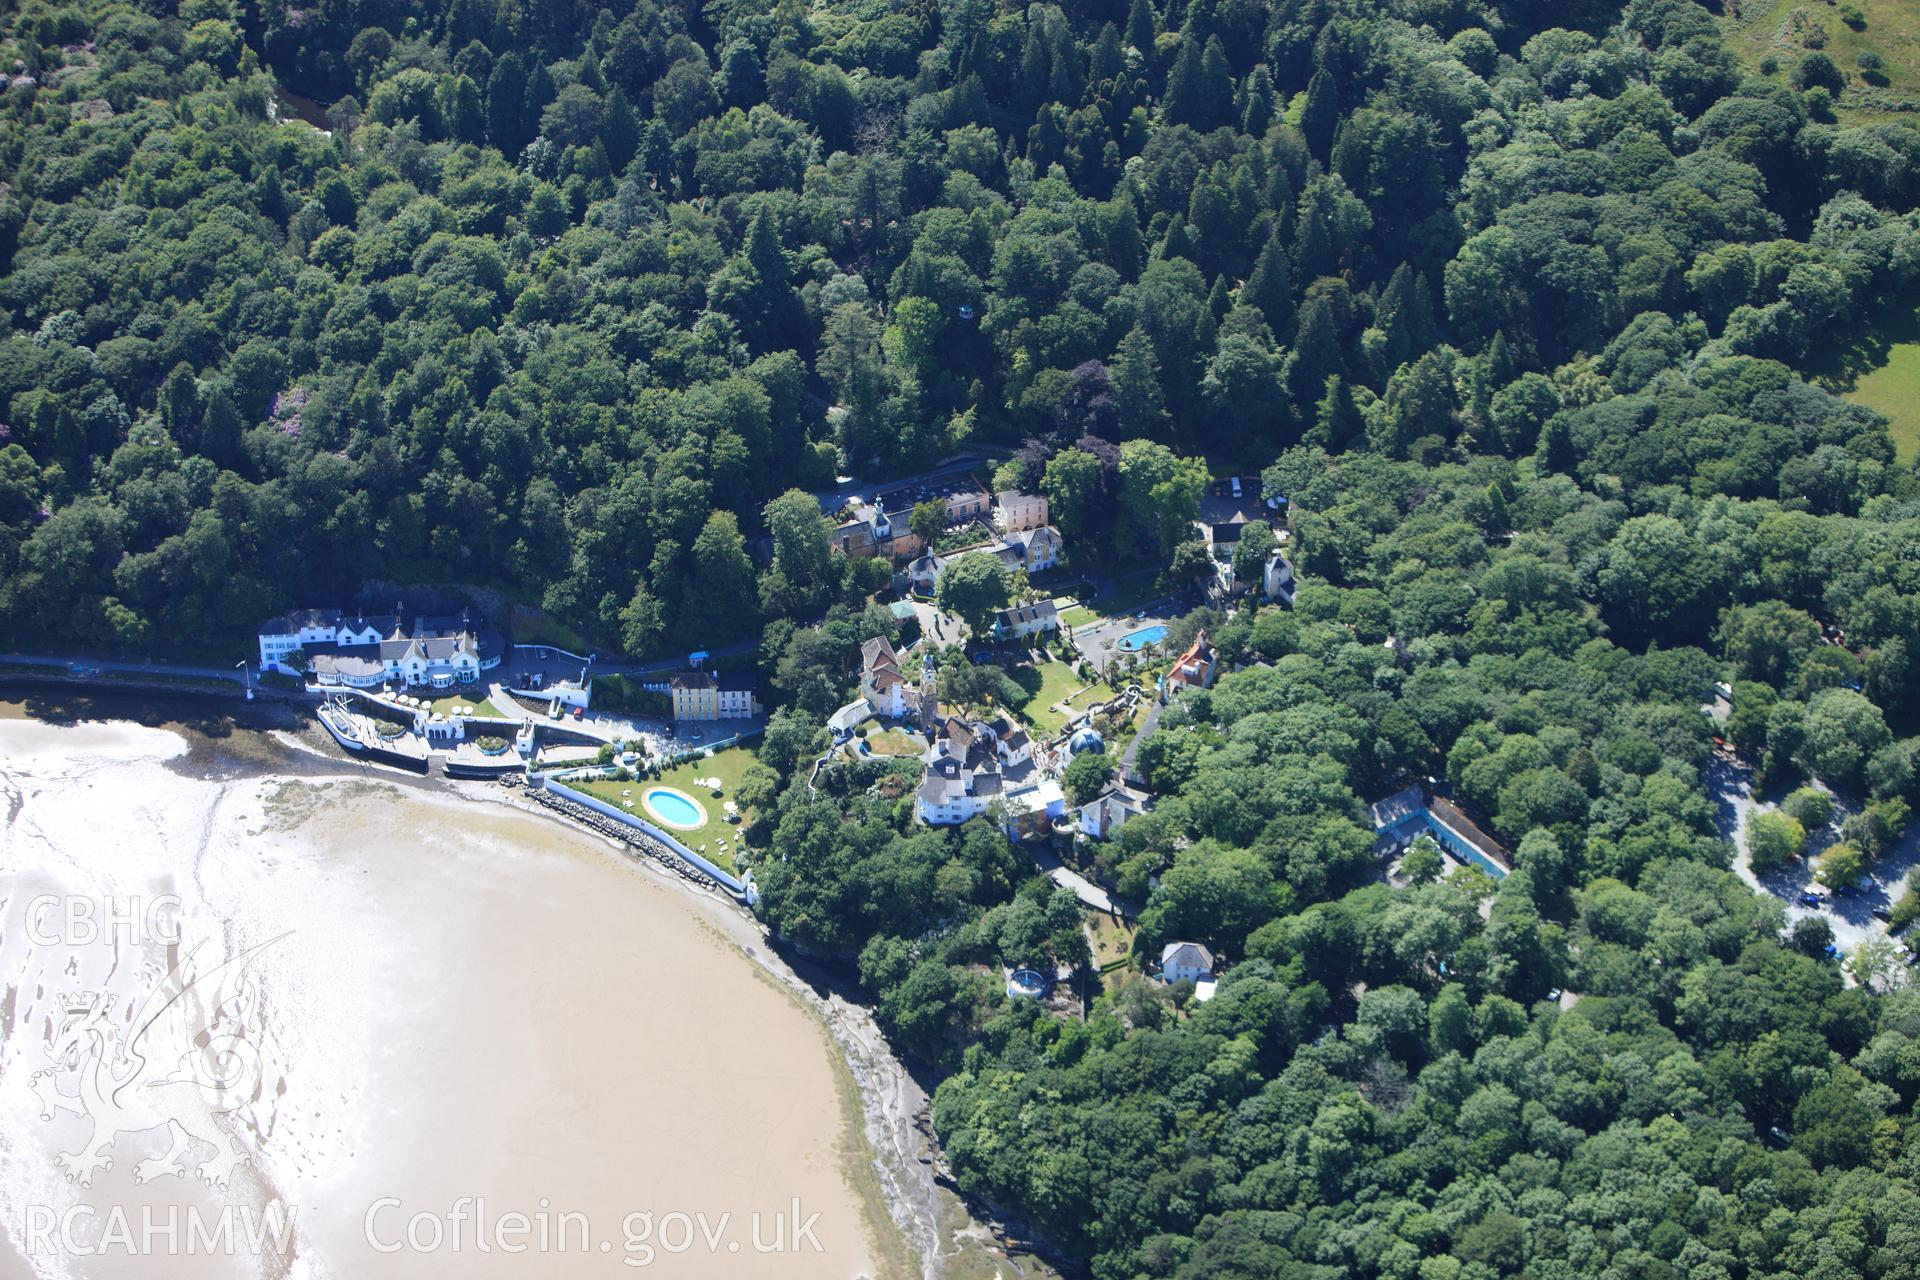 RCAHMW colour oblique photograph of Portmeirion. Taken by Toby Driver on 16/06/2010.